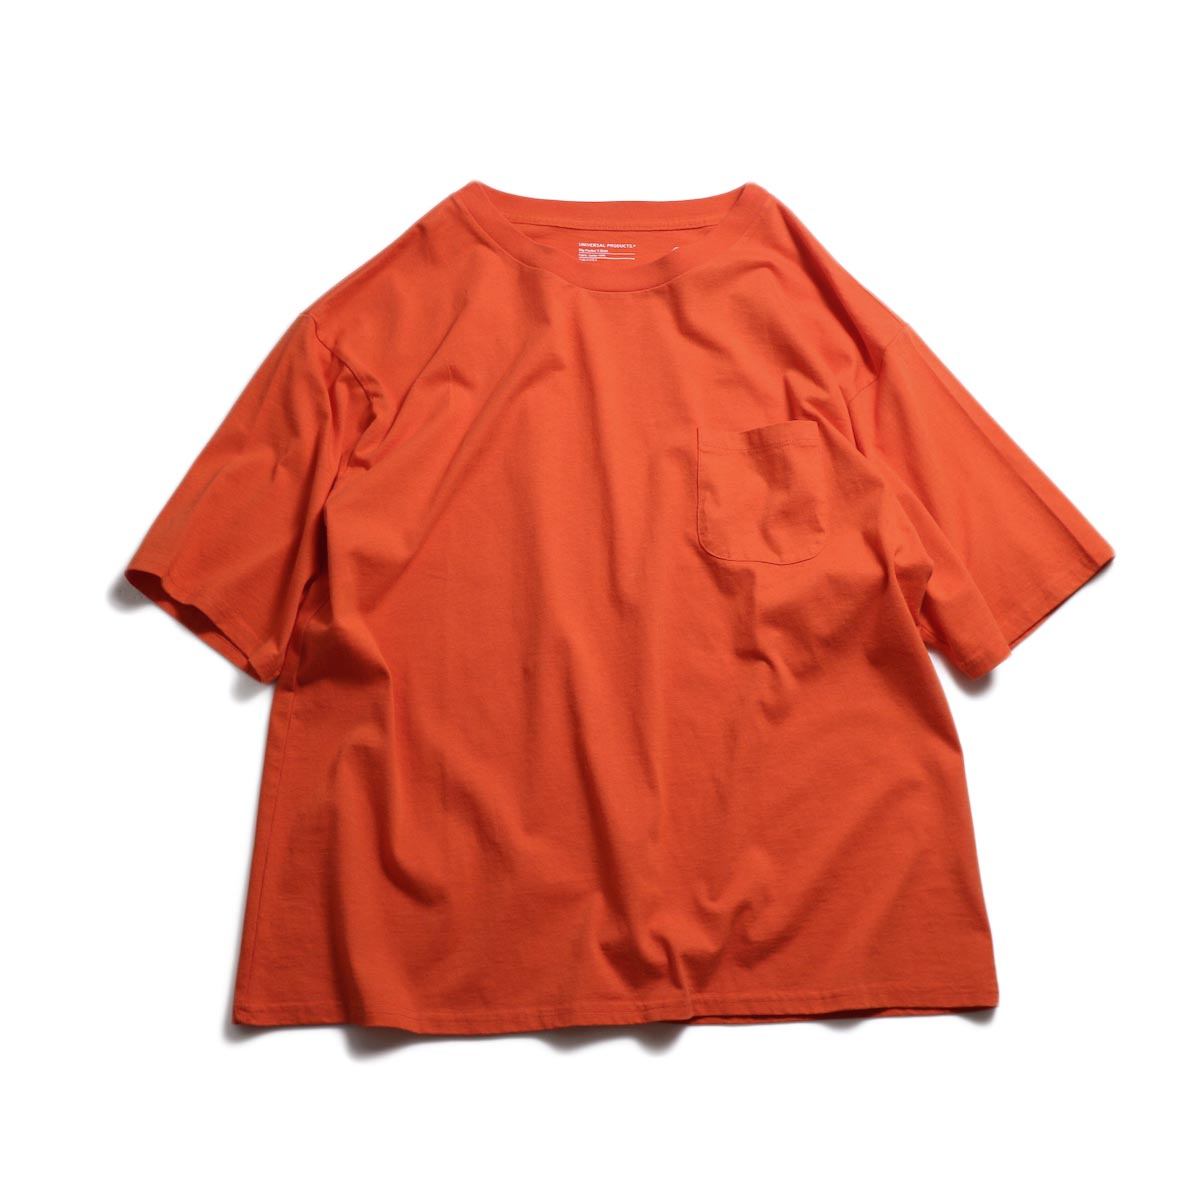 UNIVERSAL PRODUCTS / Heavy Weight S/S T-Shirt -Orange